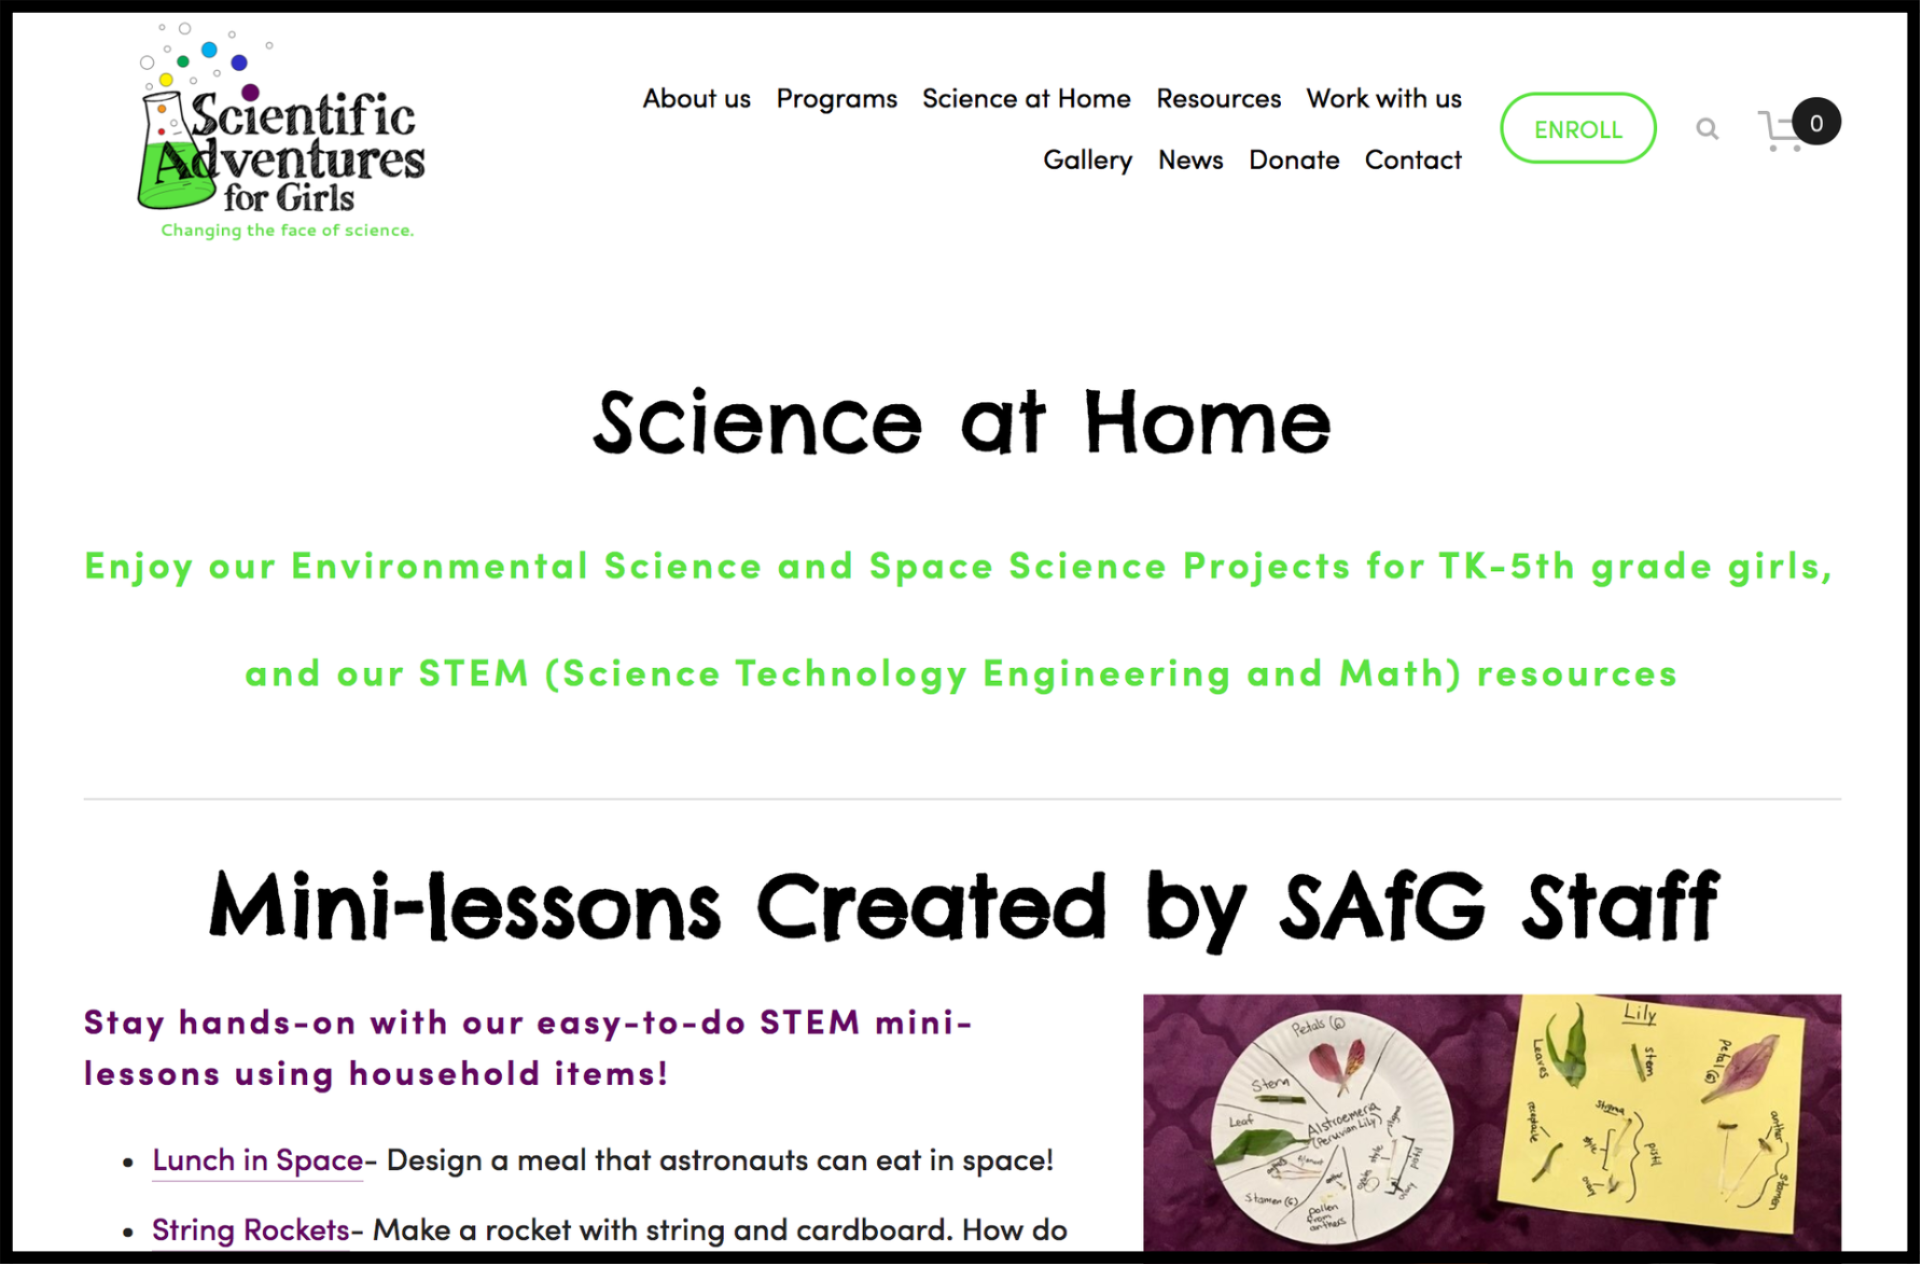 Scientific Adventures for Girls STEM at Home web page